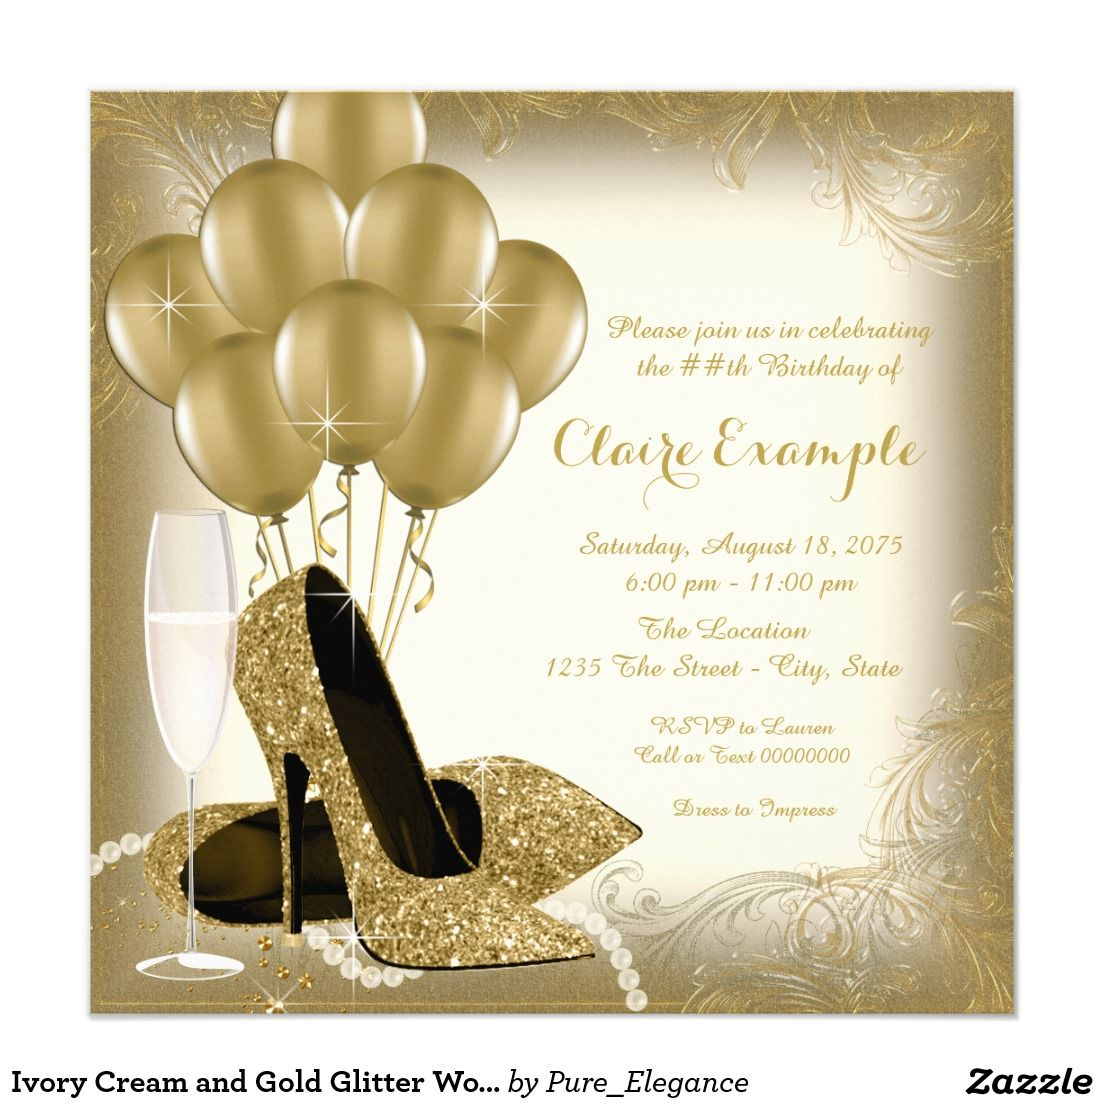 wording ideas forst birthday party invitation%0A Glitter Birthday Party Invitations Ivory Cream and Gold Glitter Womans Birthday  Party Card